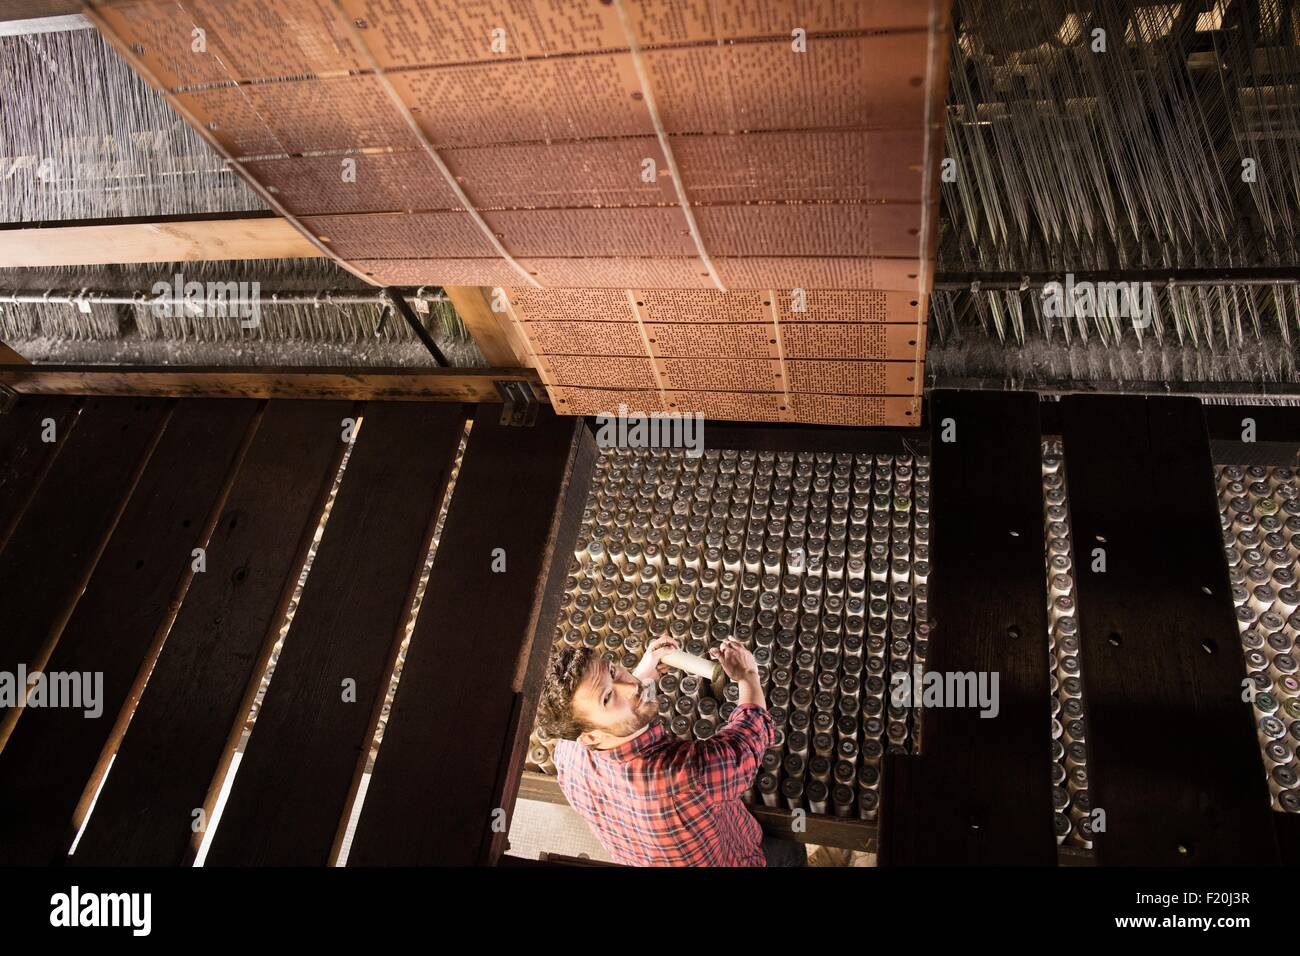 Overhead view of male weaver using old weaving machine in textile mill - Stock Image